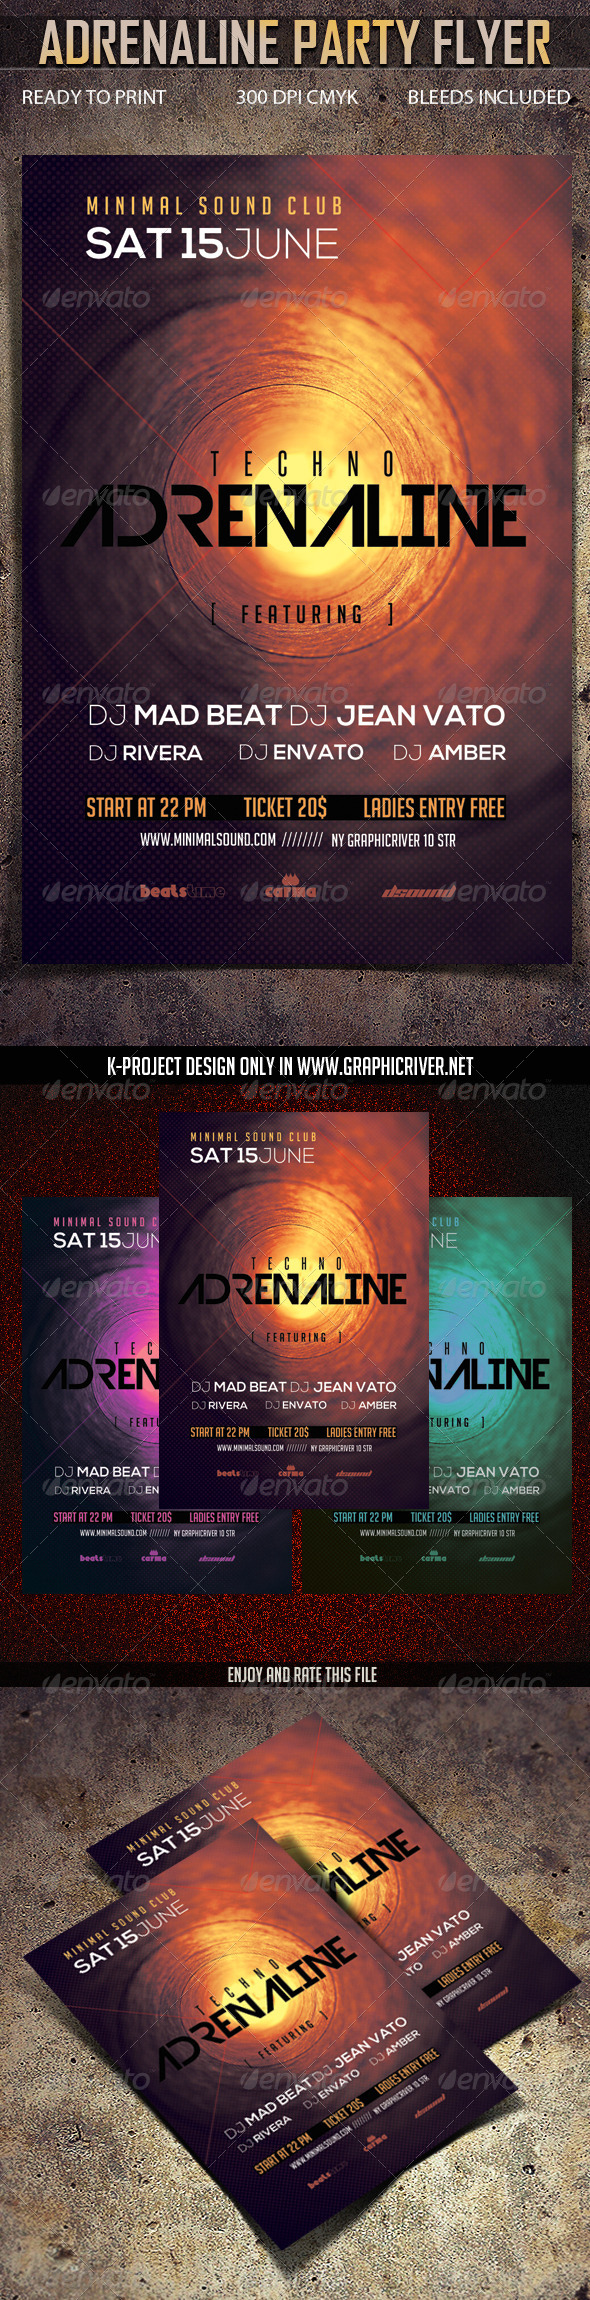 GraphicRiver Adrenaline Party Flyer 7132285